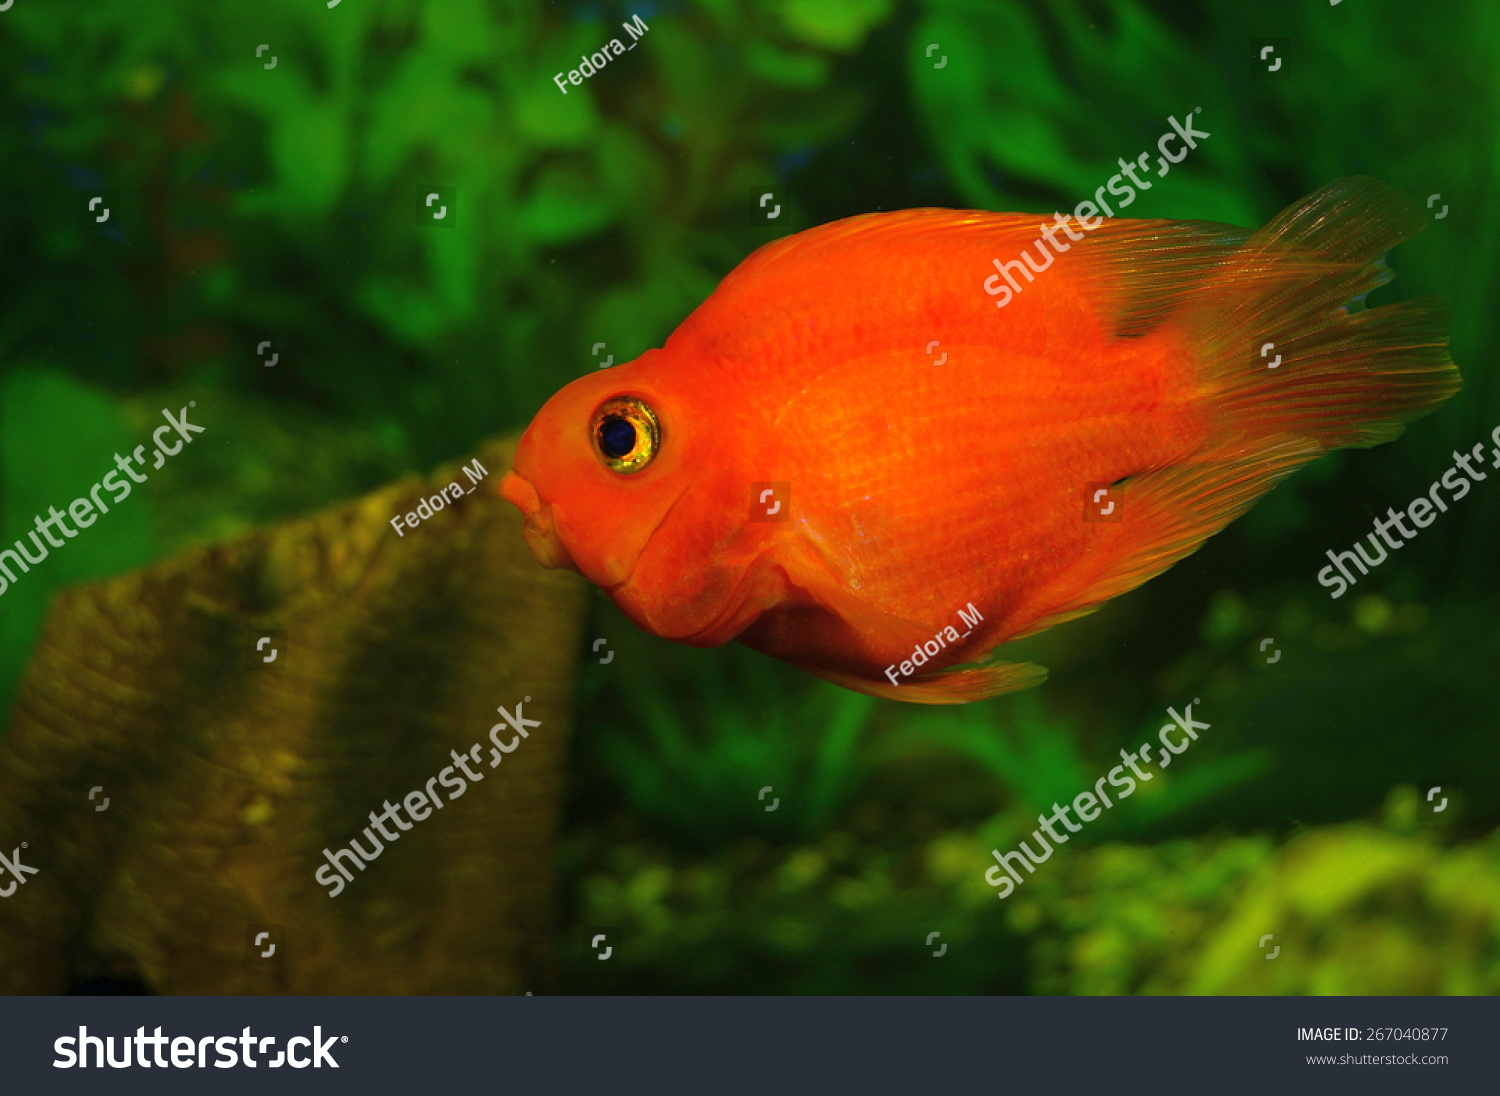 Aquarium fish - goldfish Carassius auratus | EZ Canvas